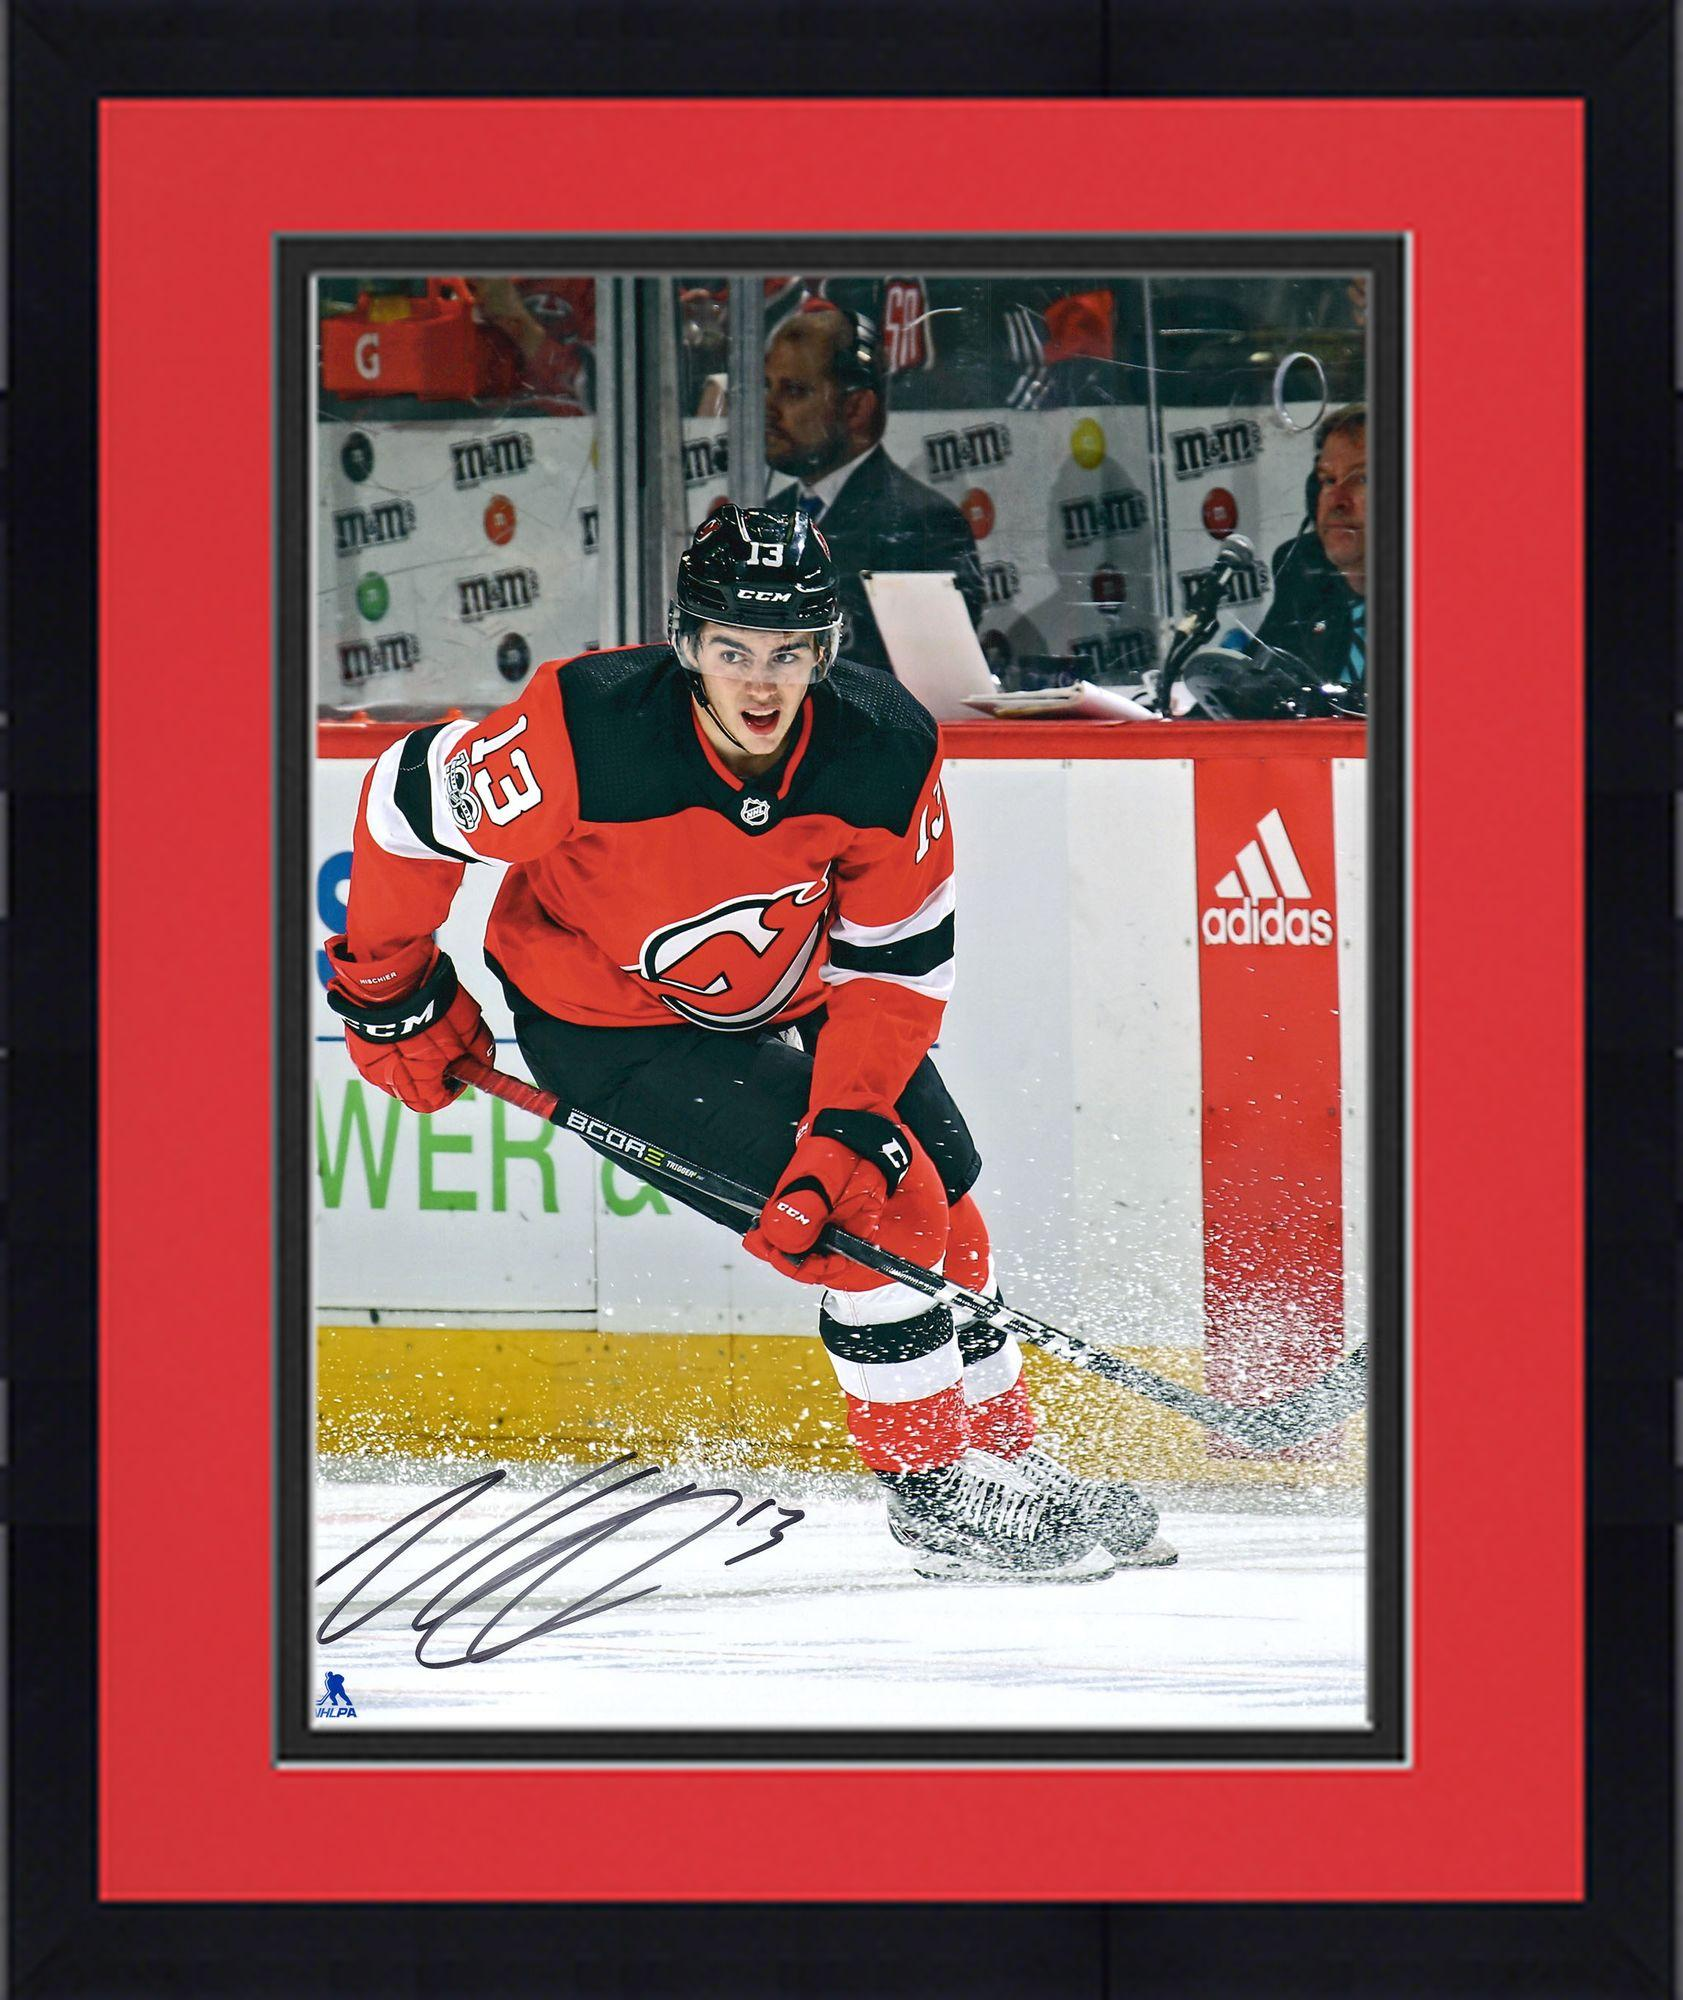 """Framed Nico Hischier New Jersey Devils Autographed 16"""" x 20"""" Red Jersey Skating Photograph Fanatics Authentic... by Fanatics Authentic"""